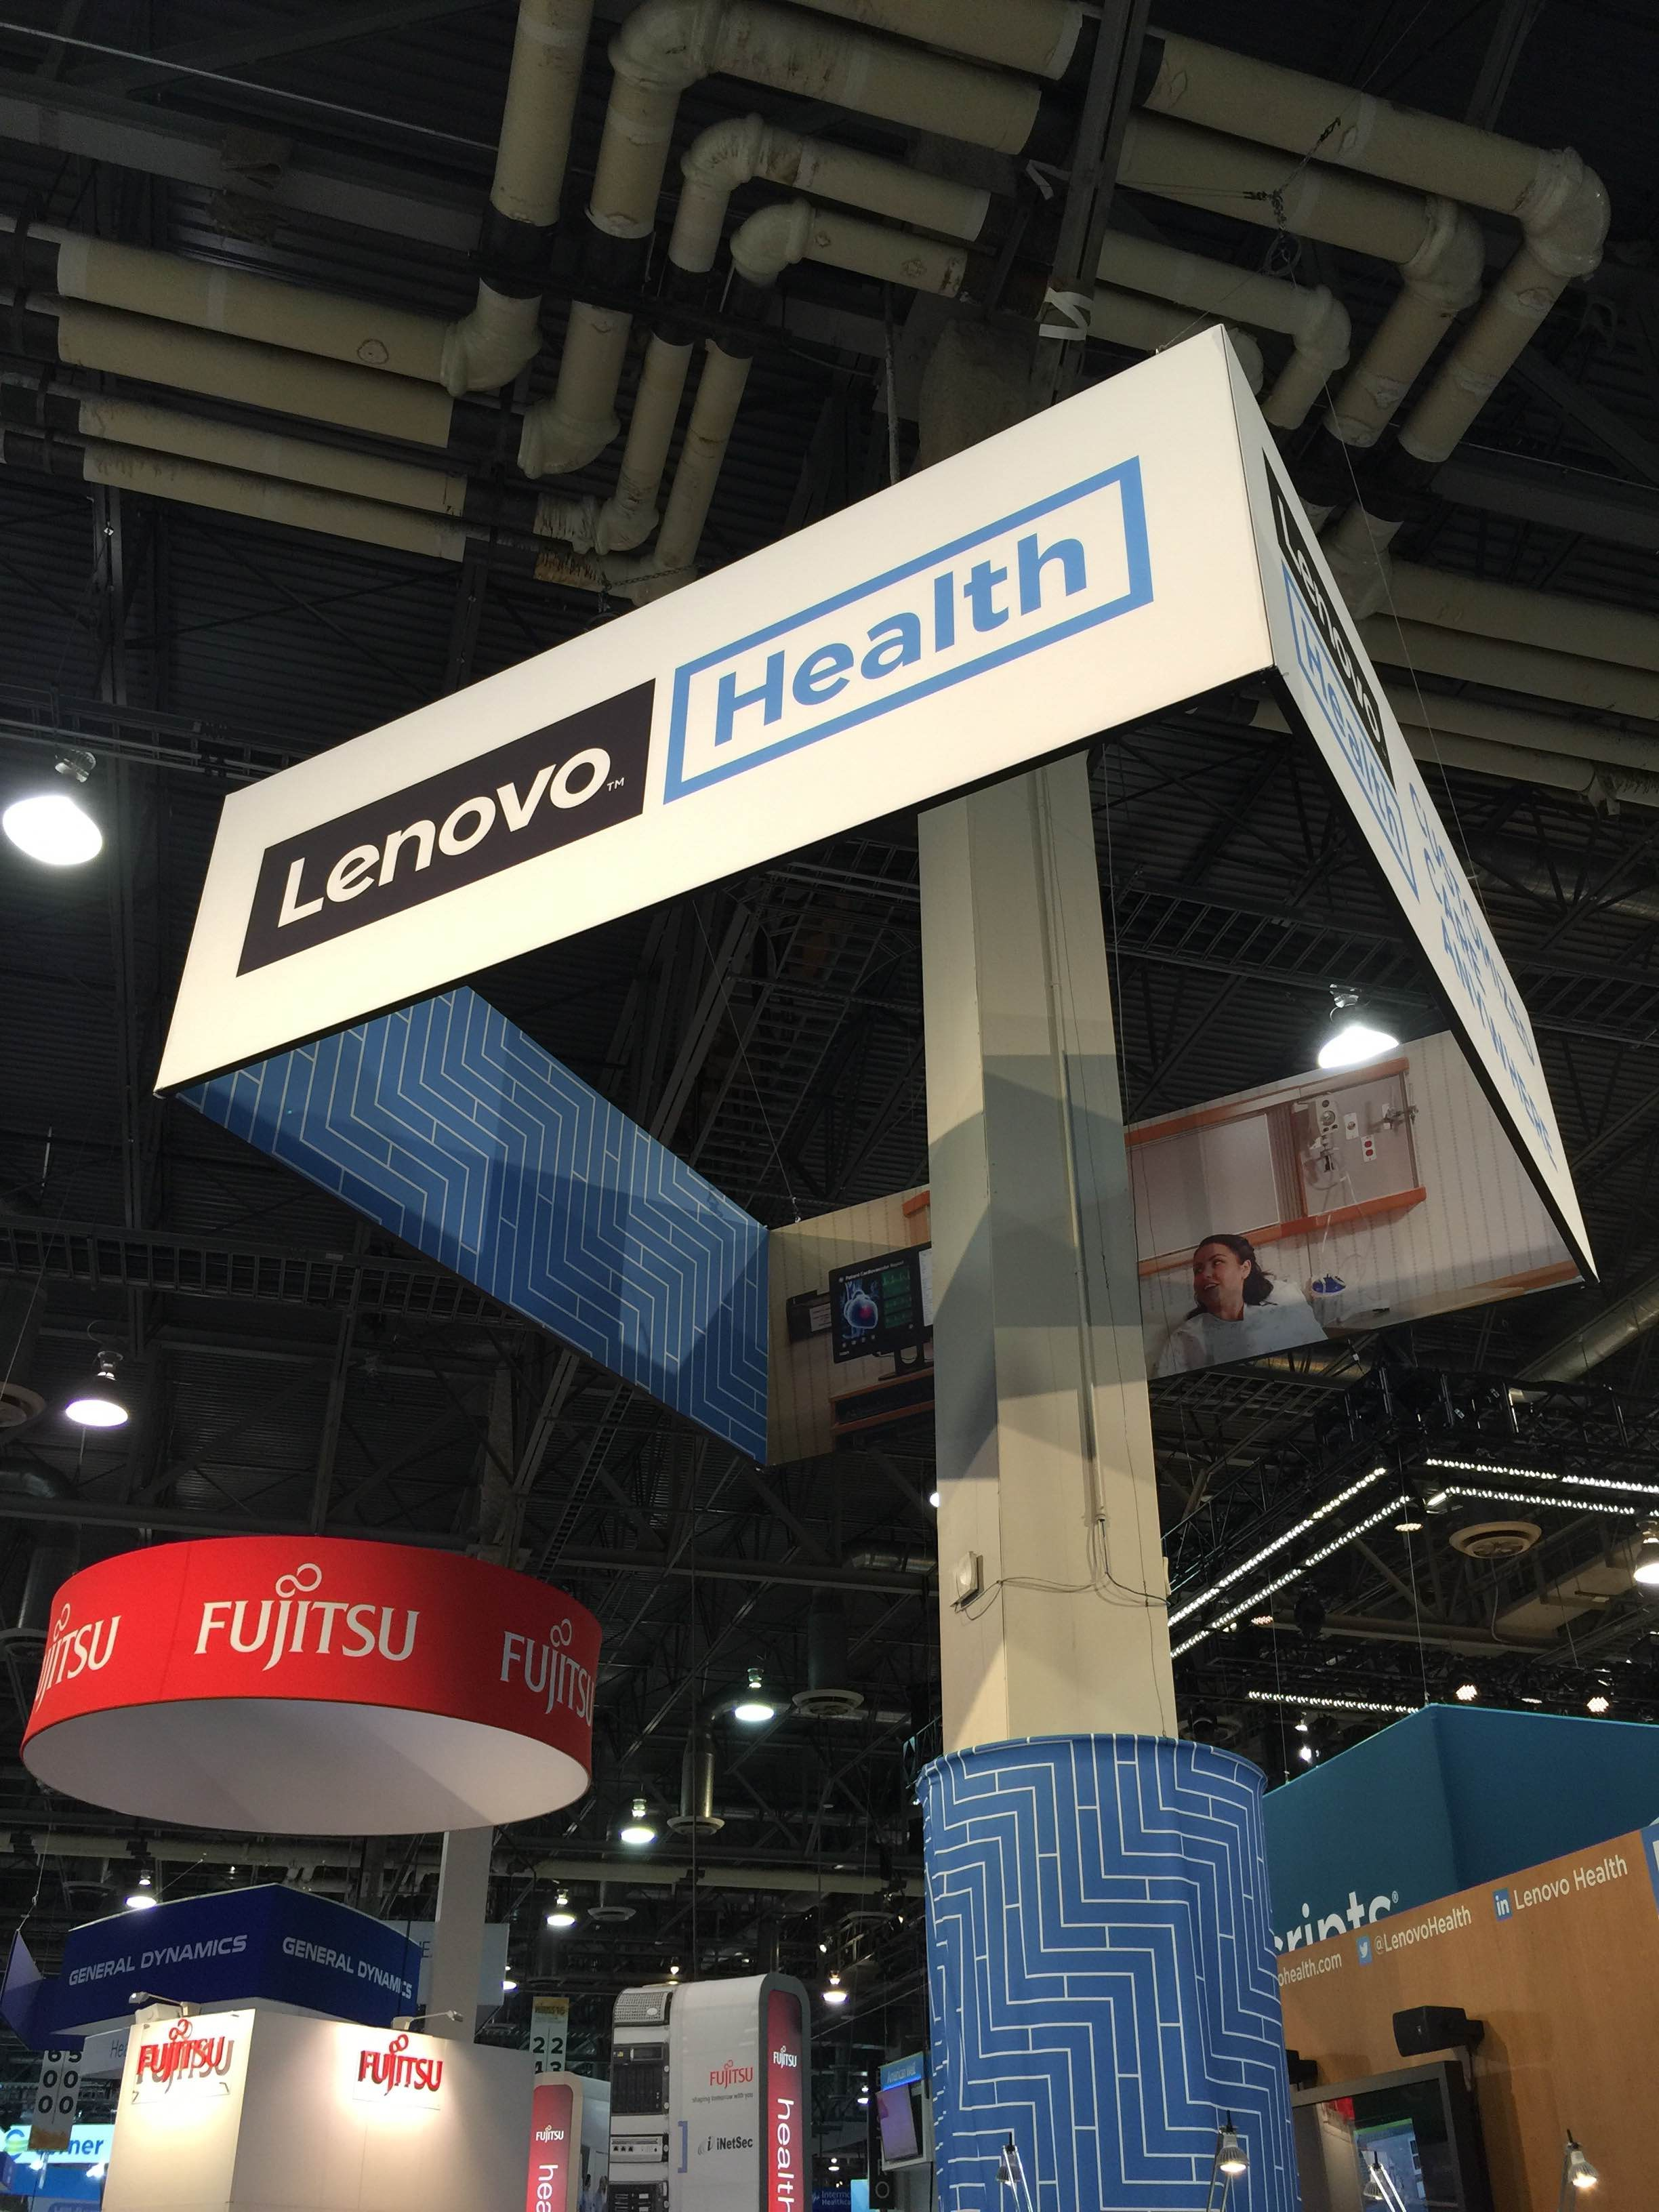 Lenovo Features VSee Chronic Care Management System